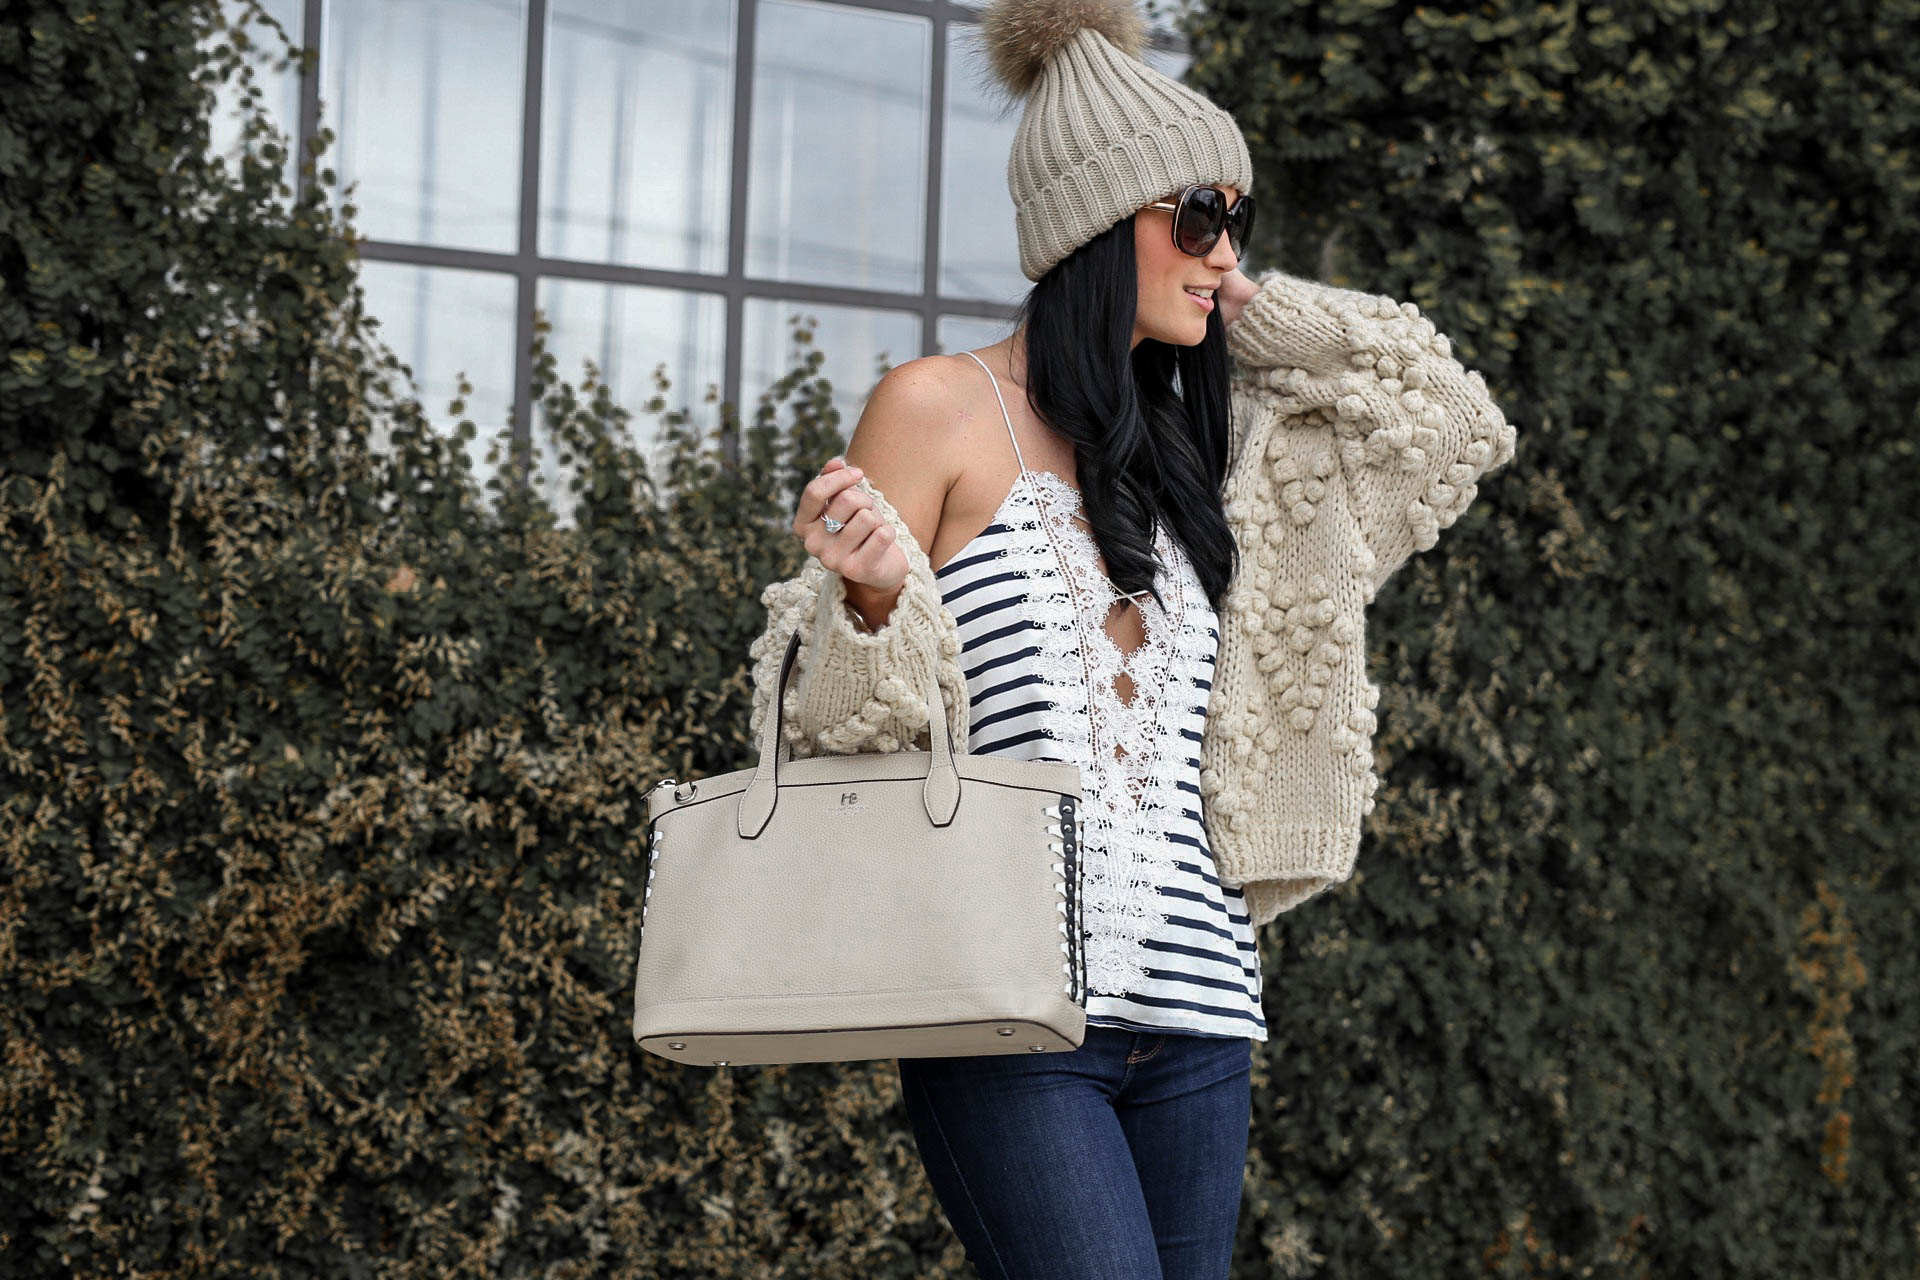 DTKAustin is sharing her must have picks to easily transition your wardrobe into Spring and summer with Chicwish, Henri Bendel and CamiNYC. - Must Have Wardrobe Staples for Spring by popular Austin fashion blogger Dressed to Kill